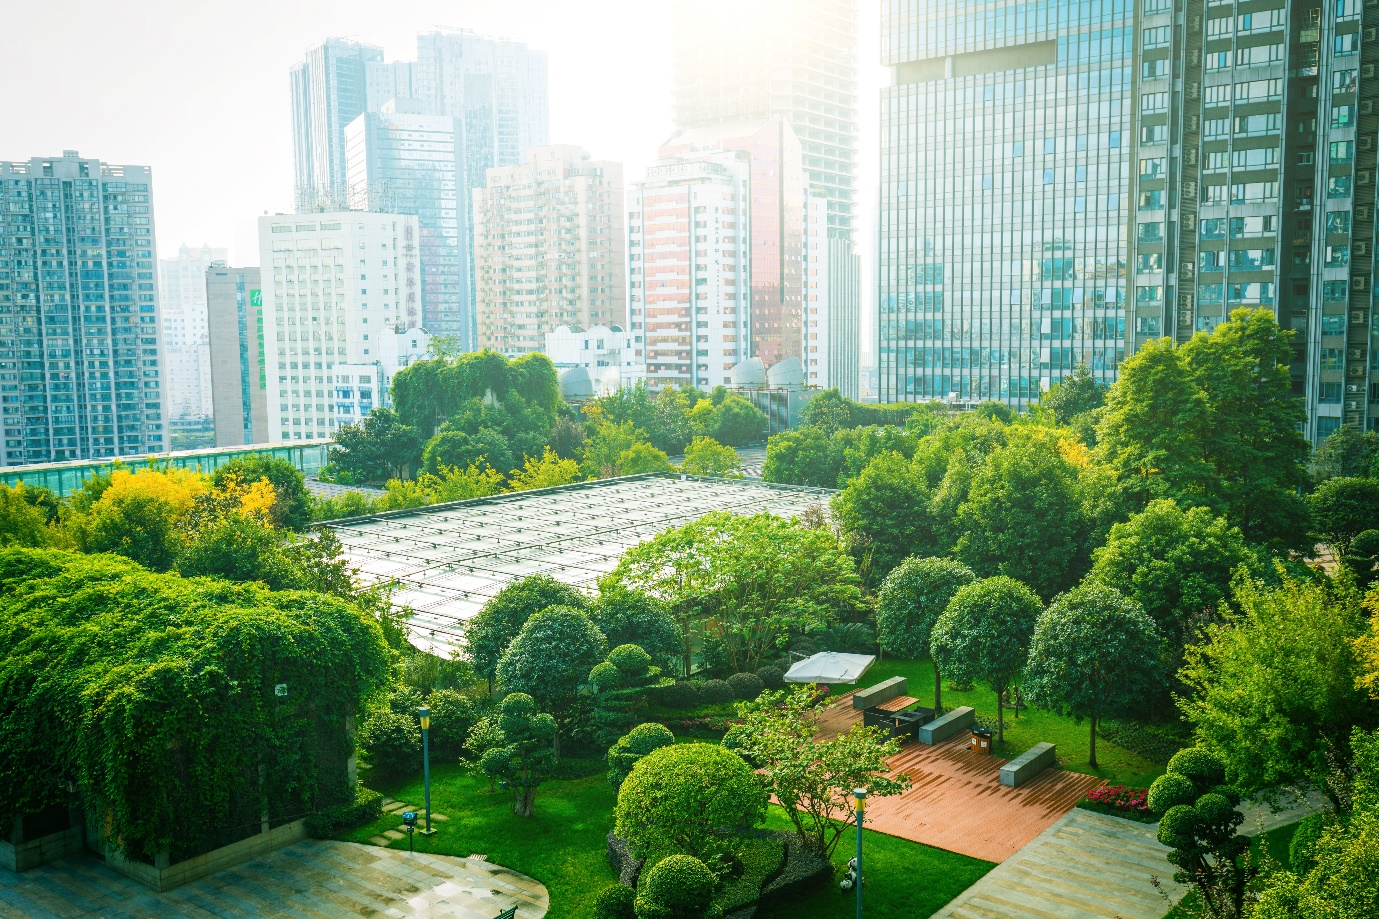 High rise building landscape surrounded by many green trees